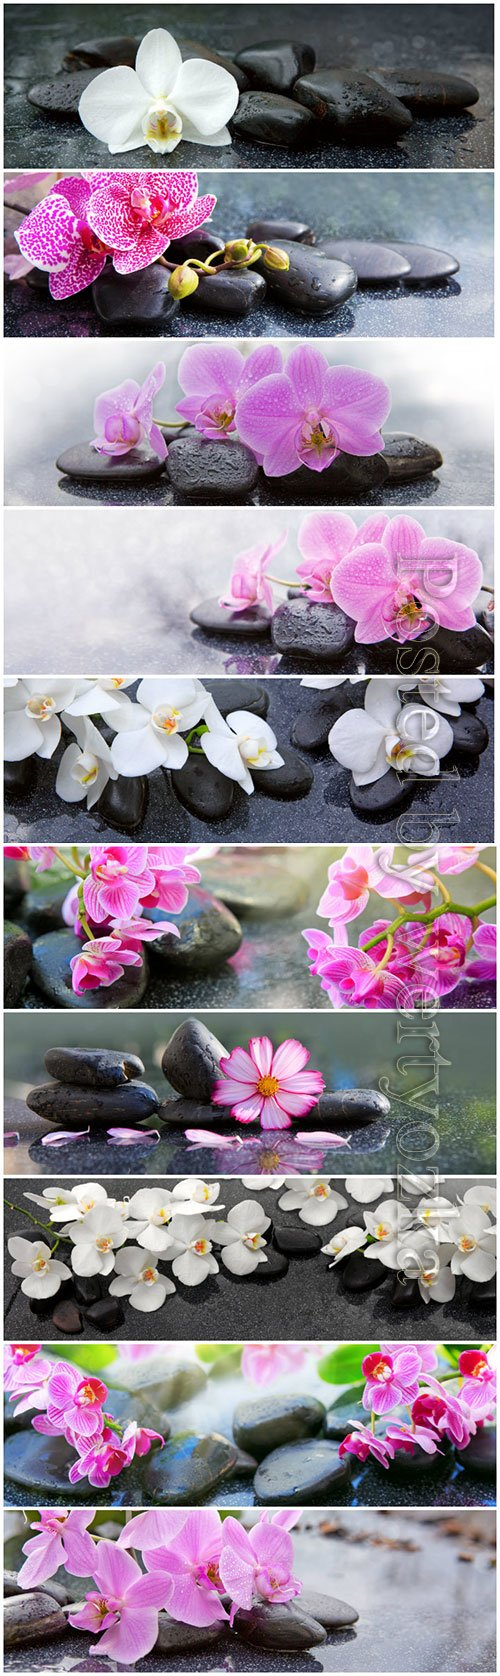 Orchids flowers and spa stones